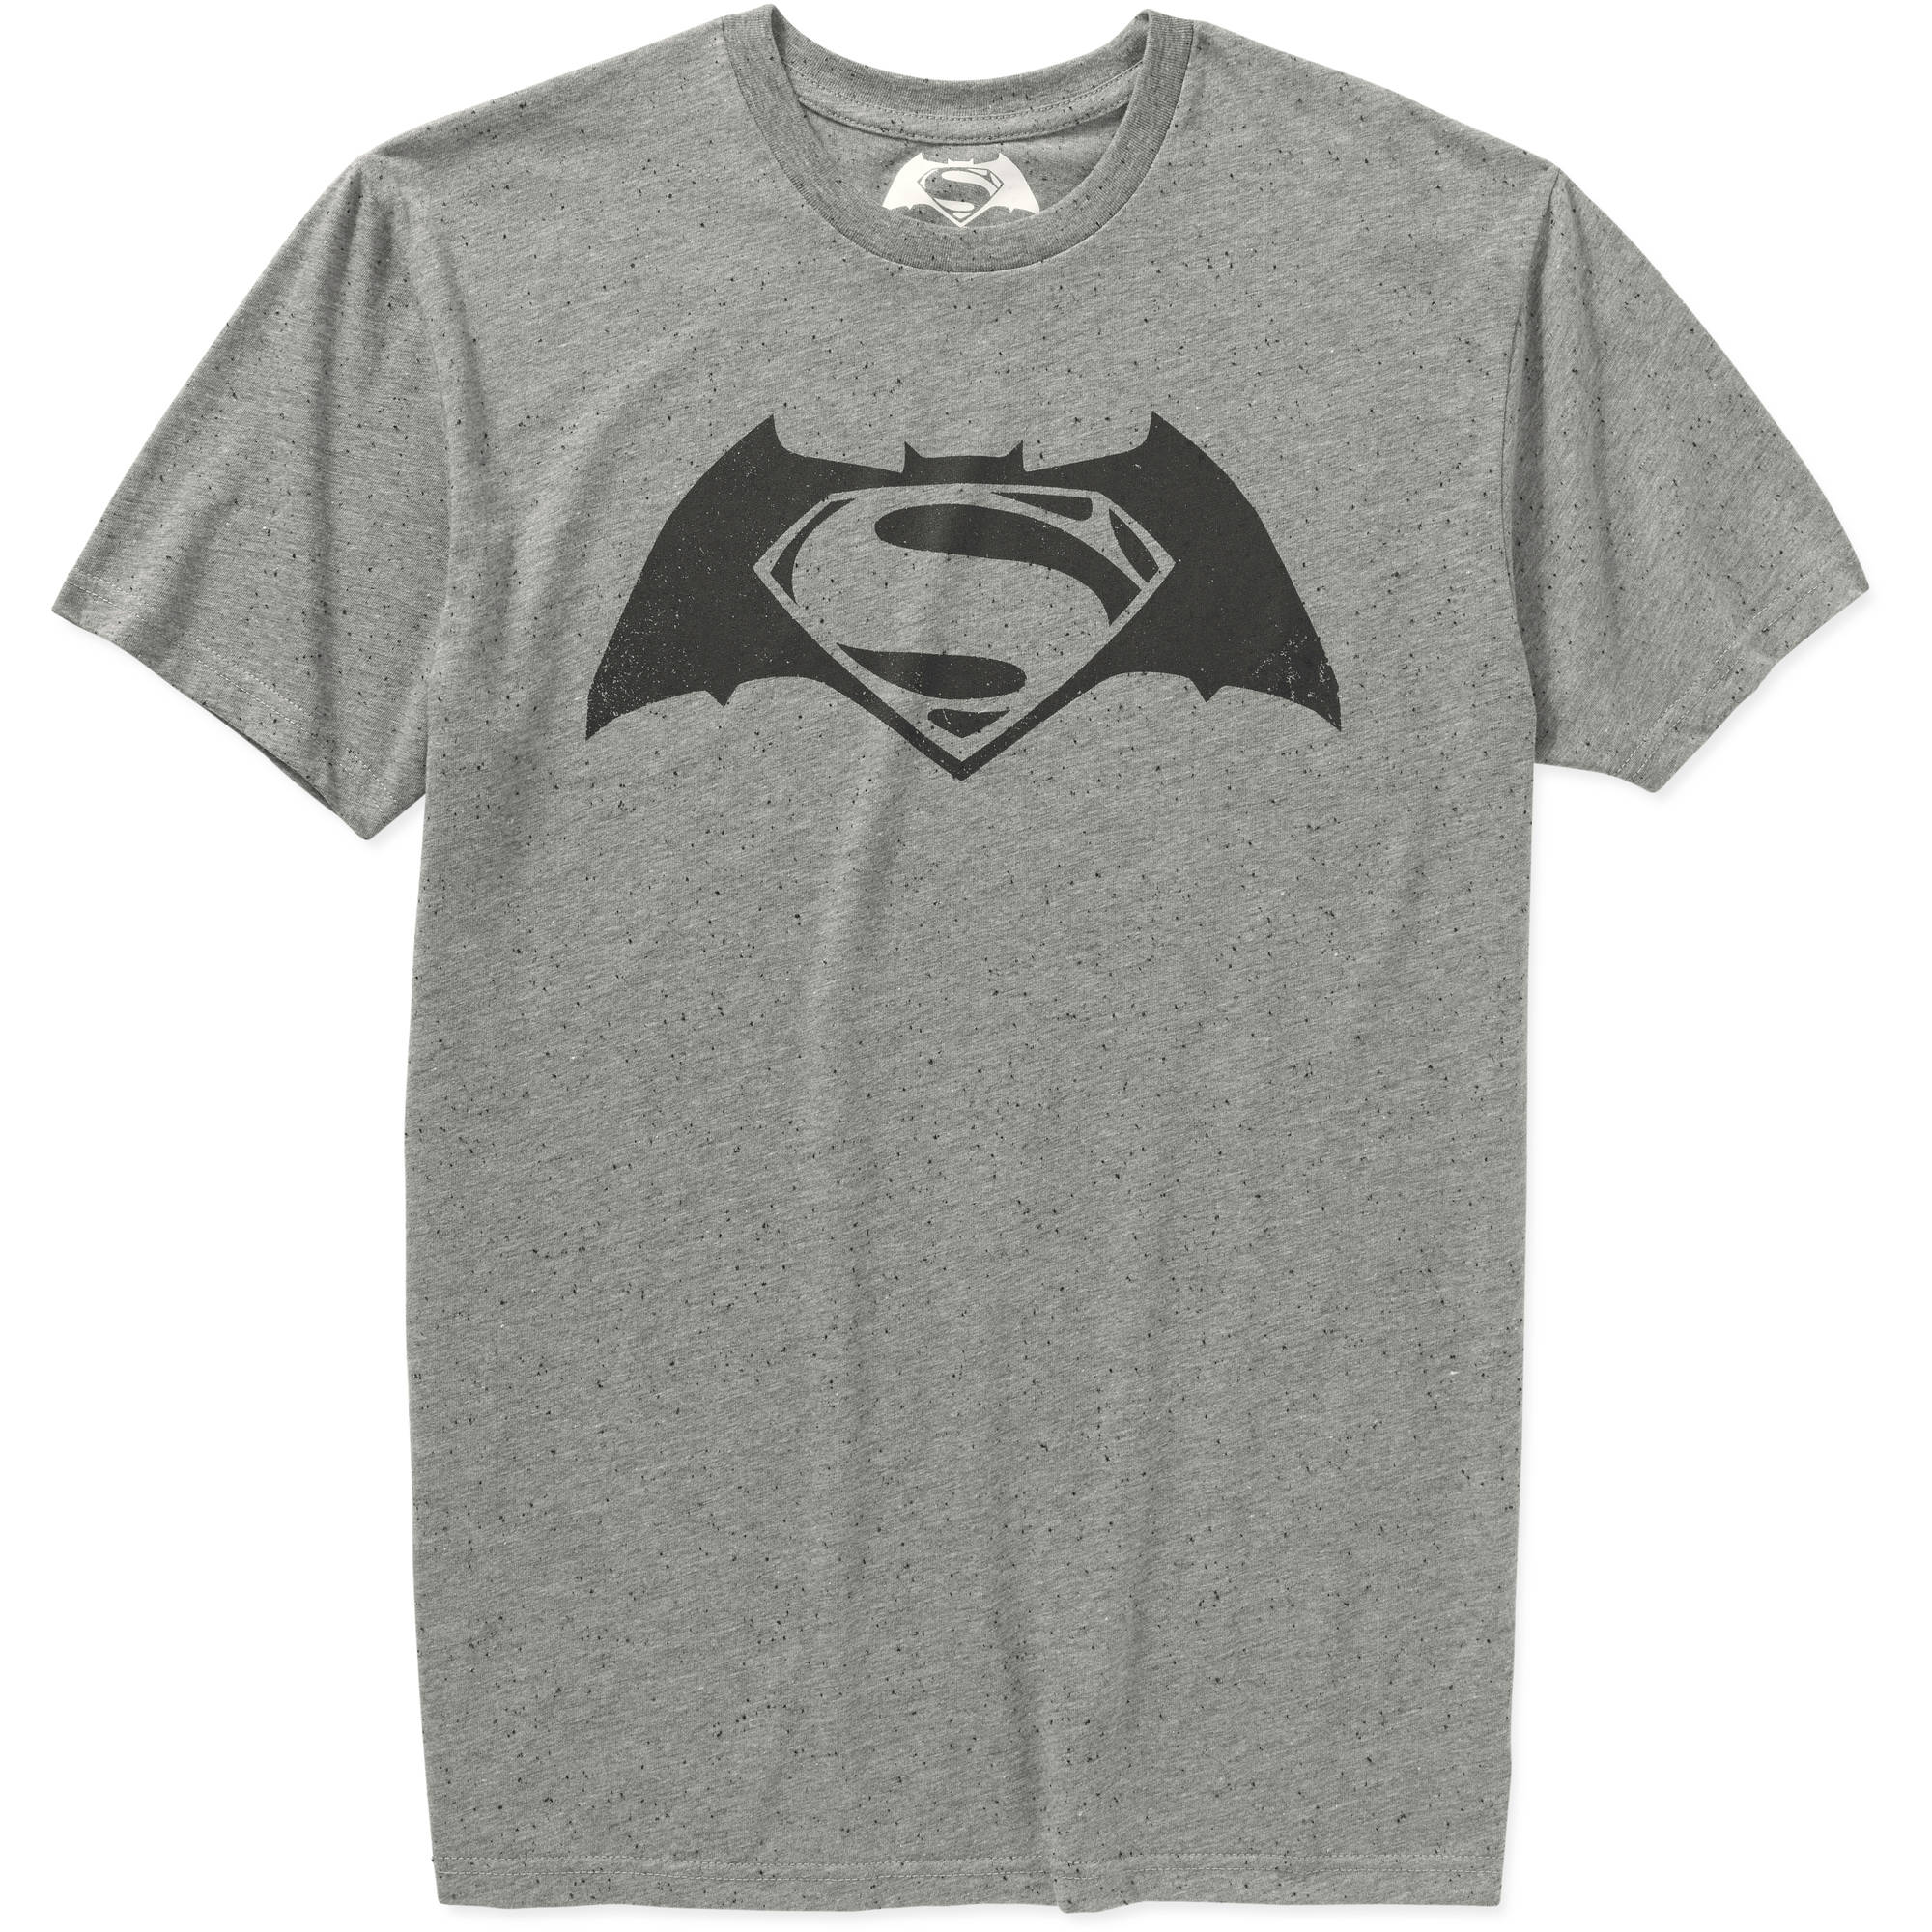 Batman vs. Superman Big Men's graphic tee, 2xl